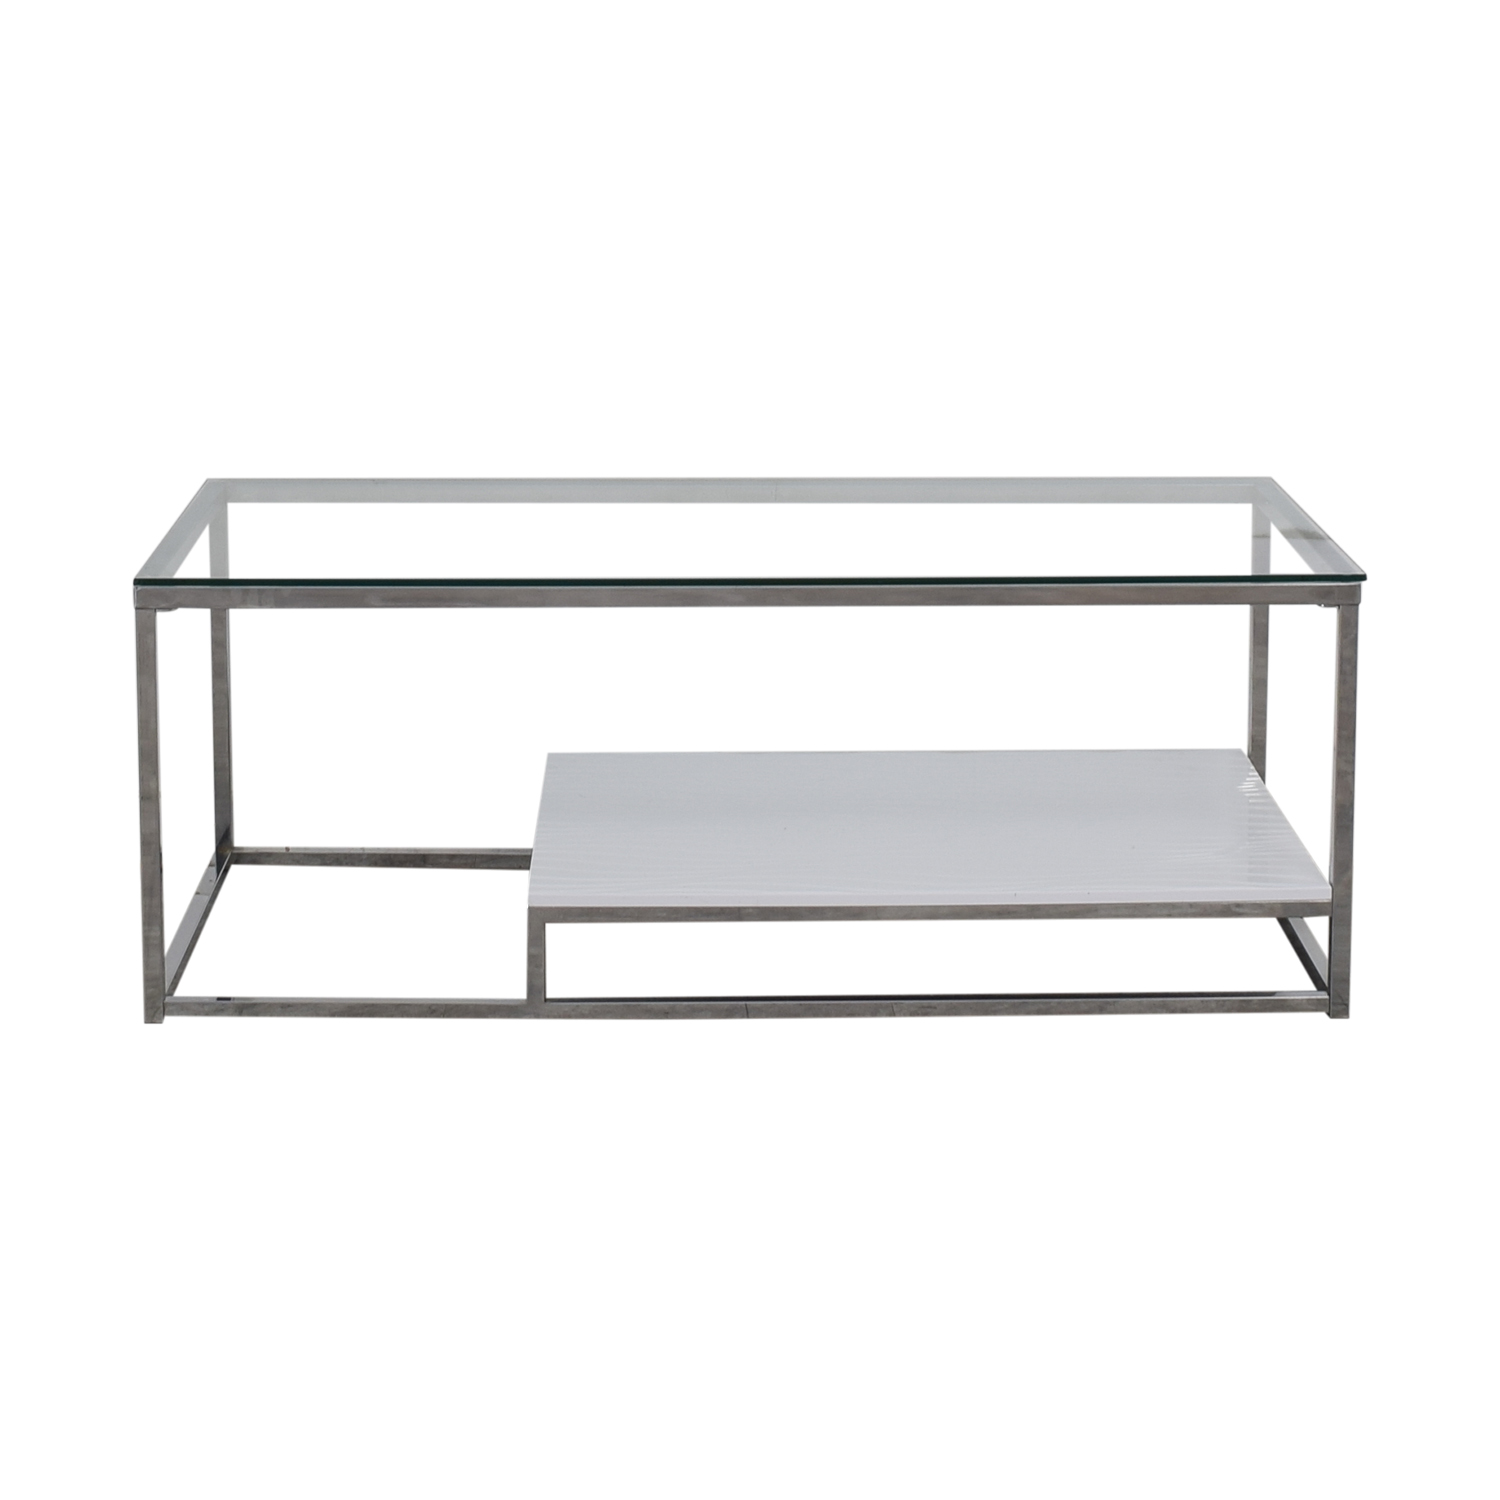 54 Off Wayfair Wayfair Saniya White And Chrome Coffee Table Tables